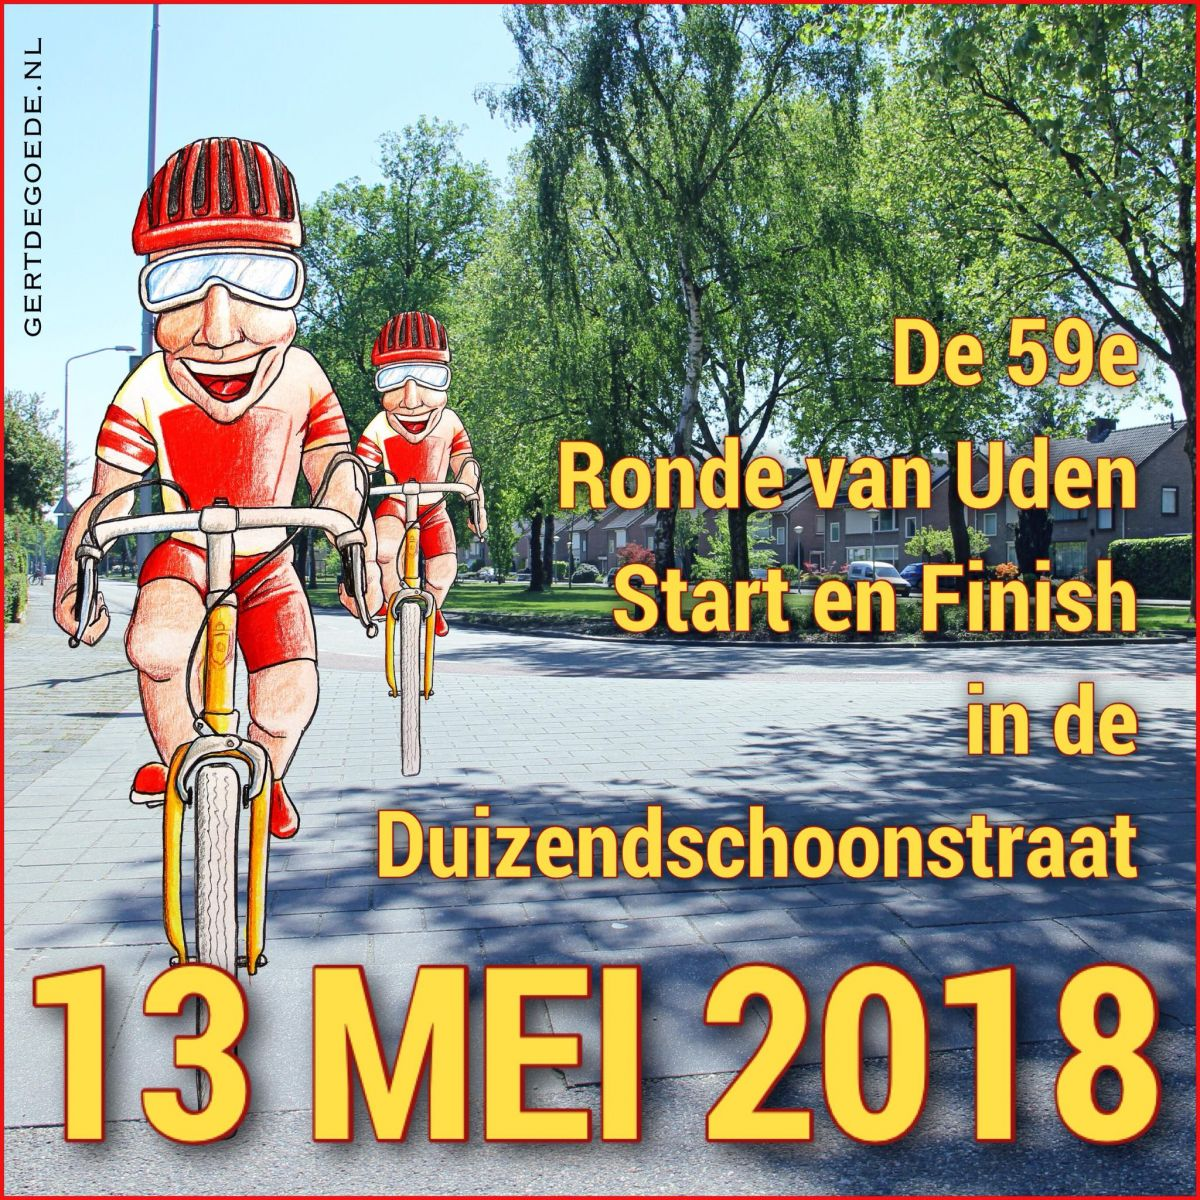 wielrennen fietsen cycling bicycle renners Uden Bitswijk Brabant Noord #illustration #illustrator #illustratie #illustrazione #illustrazioni #ambachtelijk #ambacht #vrolijk #happy #fun #cheerful #cartoon #comic #photoedit #thumbsup #artwork #fröhlich #cheerful #gai #glædelig #lëschtegb #快活 插图 #gertdegoede #art 	#искусство